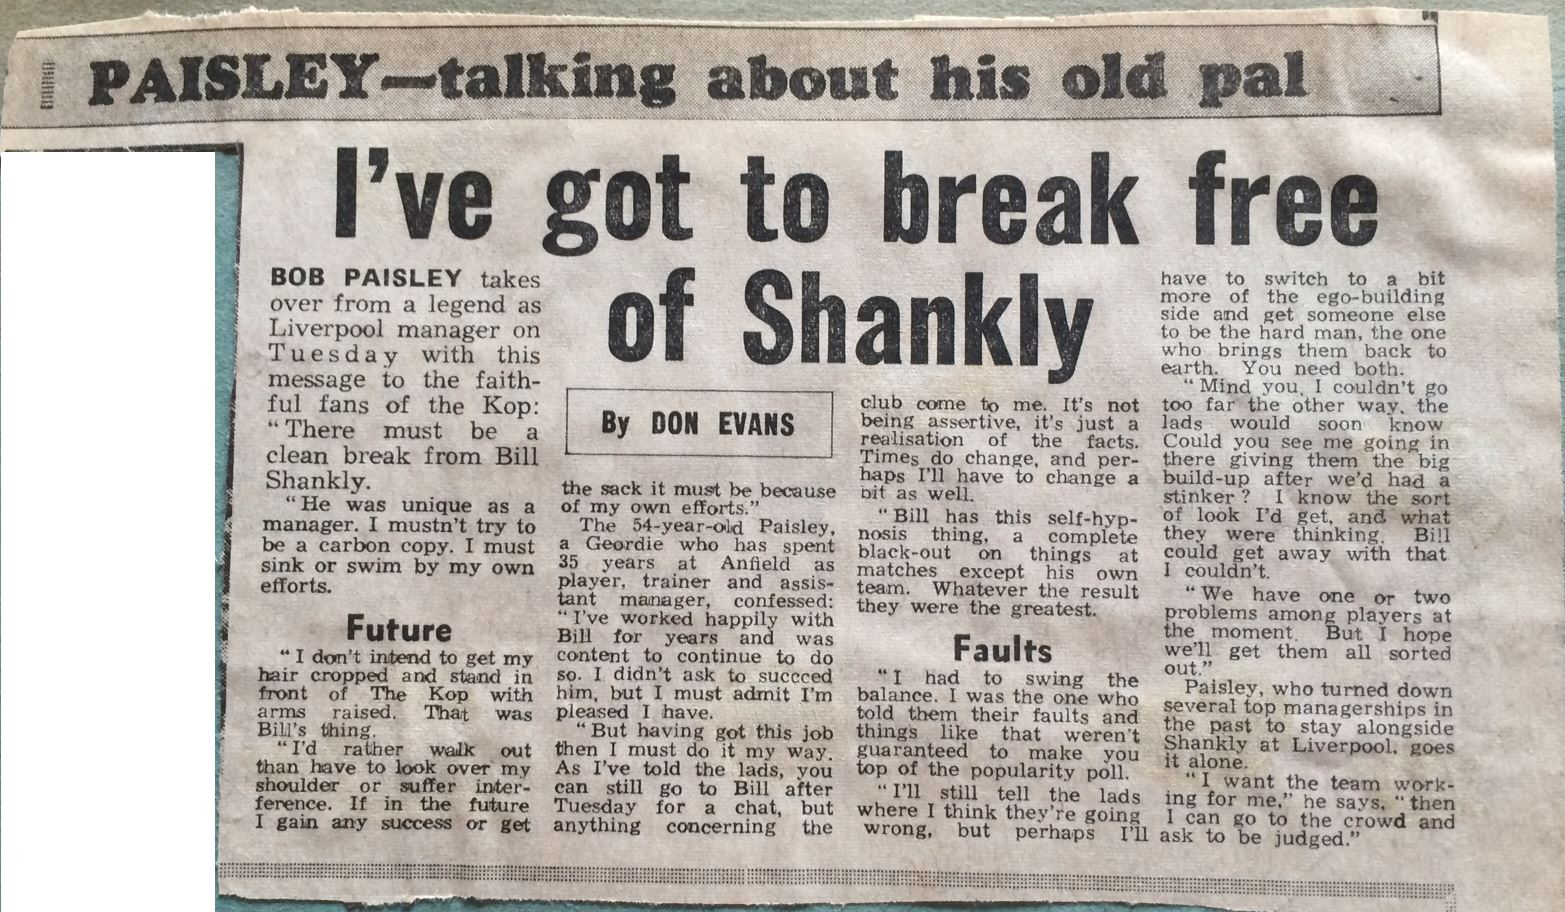 I've got to break free of Shankly - July 1974